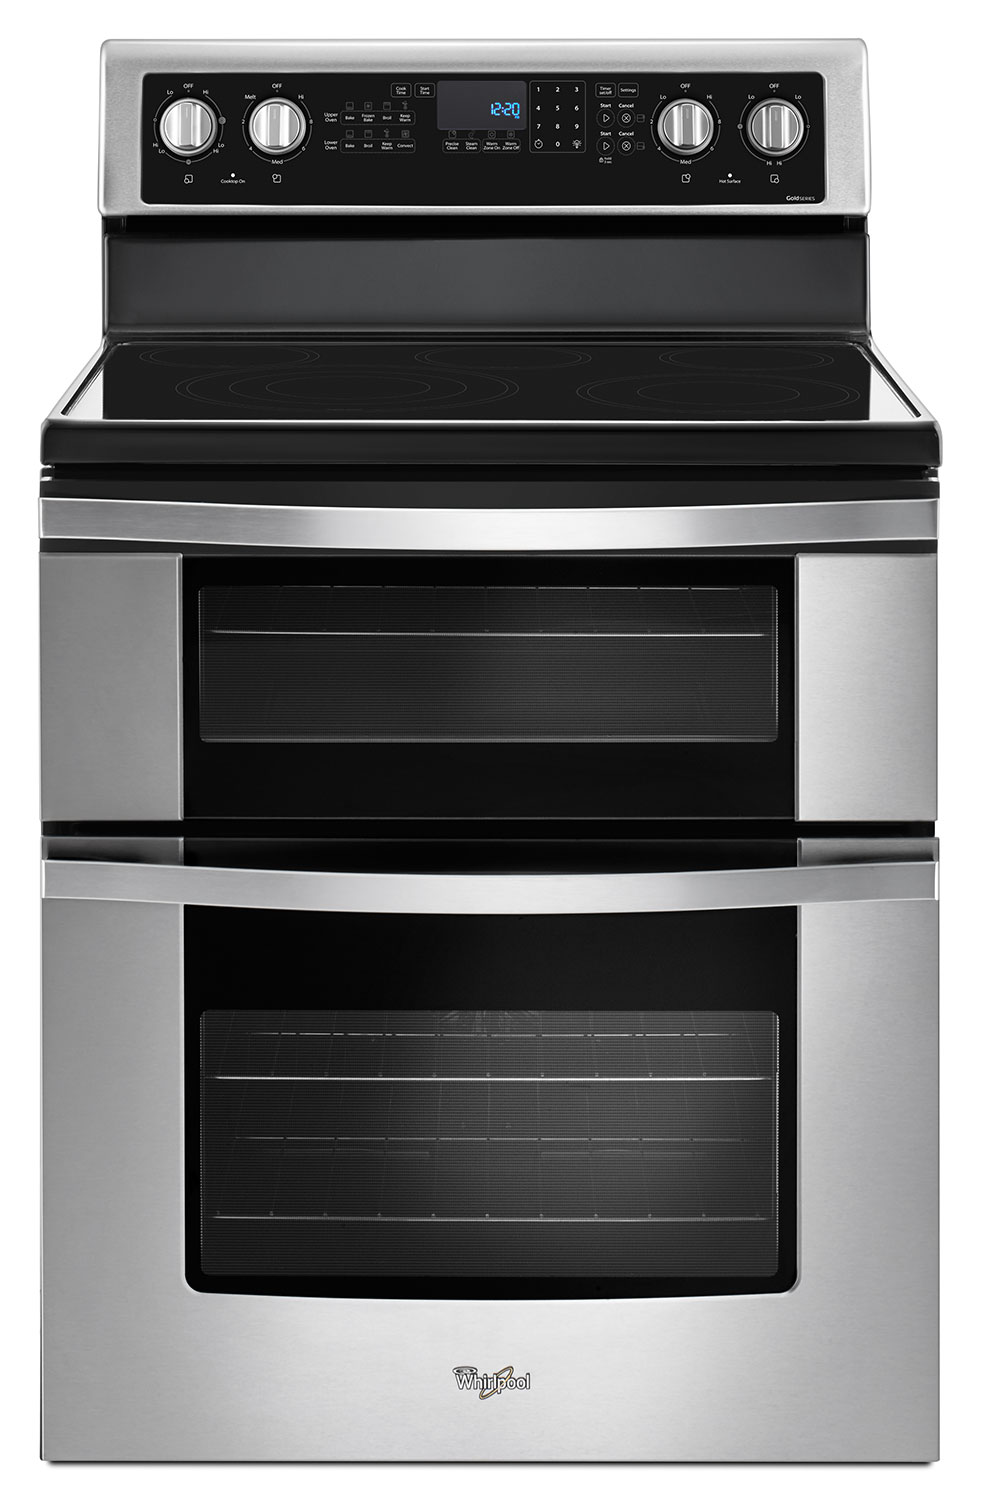 Whirlpool 6.7 Cu. Ft. Double Oven Electric Range – YWGE745C0FS